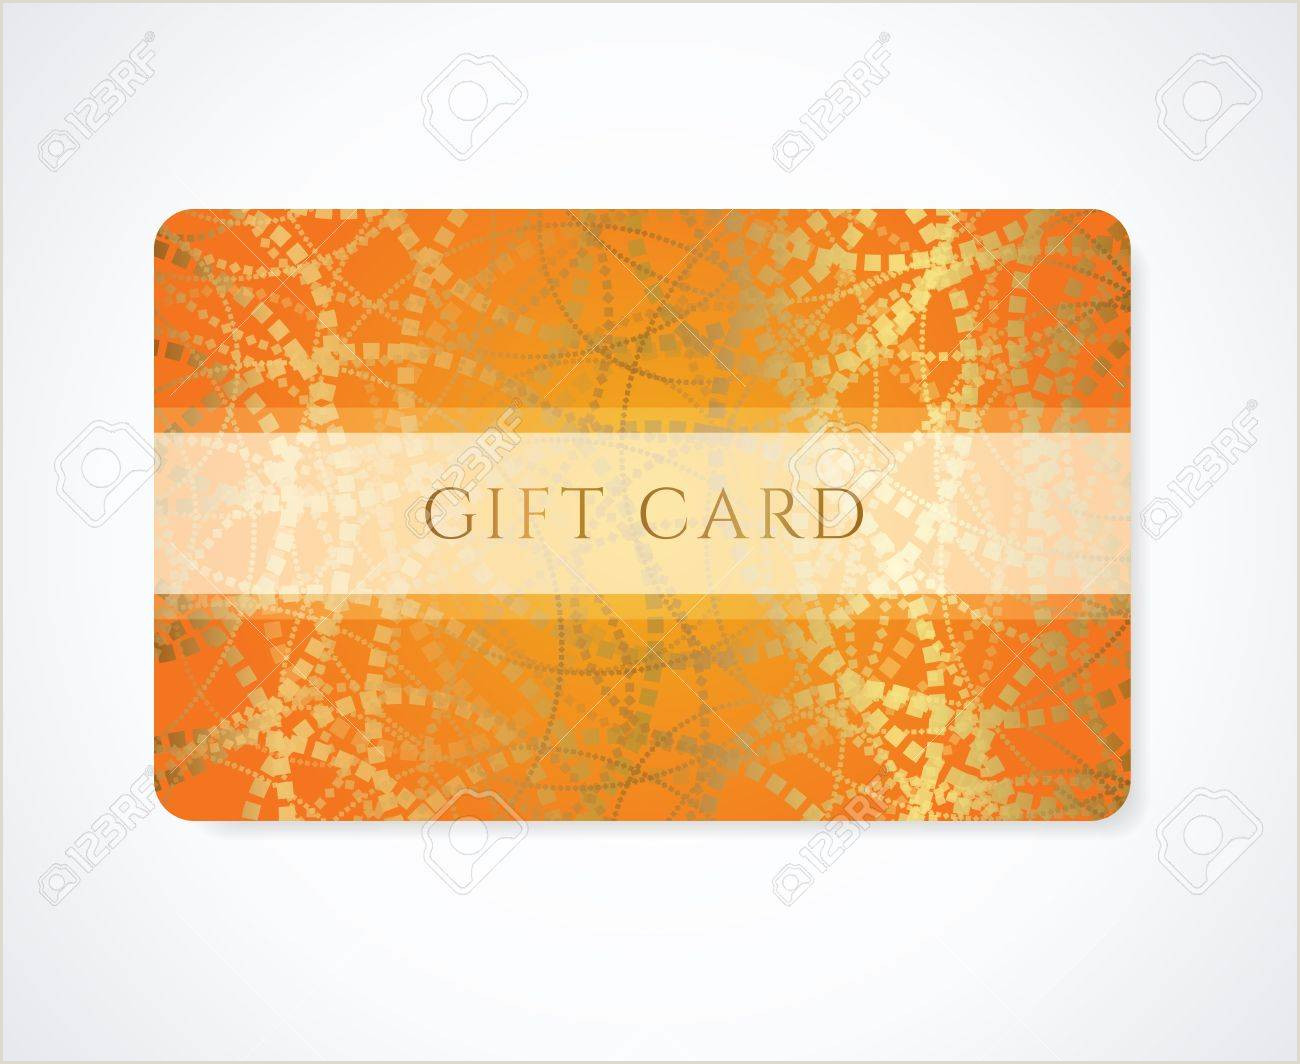 Complimentary Card Samples Bright Orange Gift Card Business Card Discount Card Template